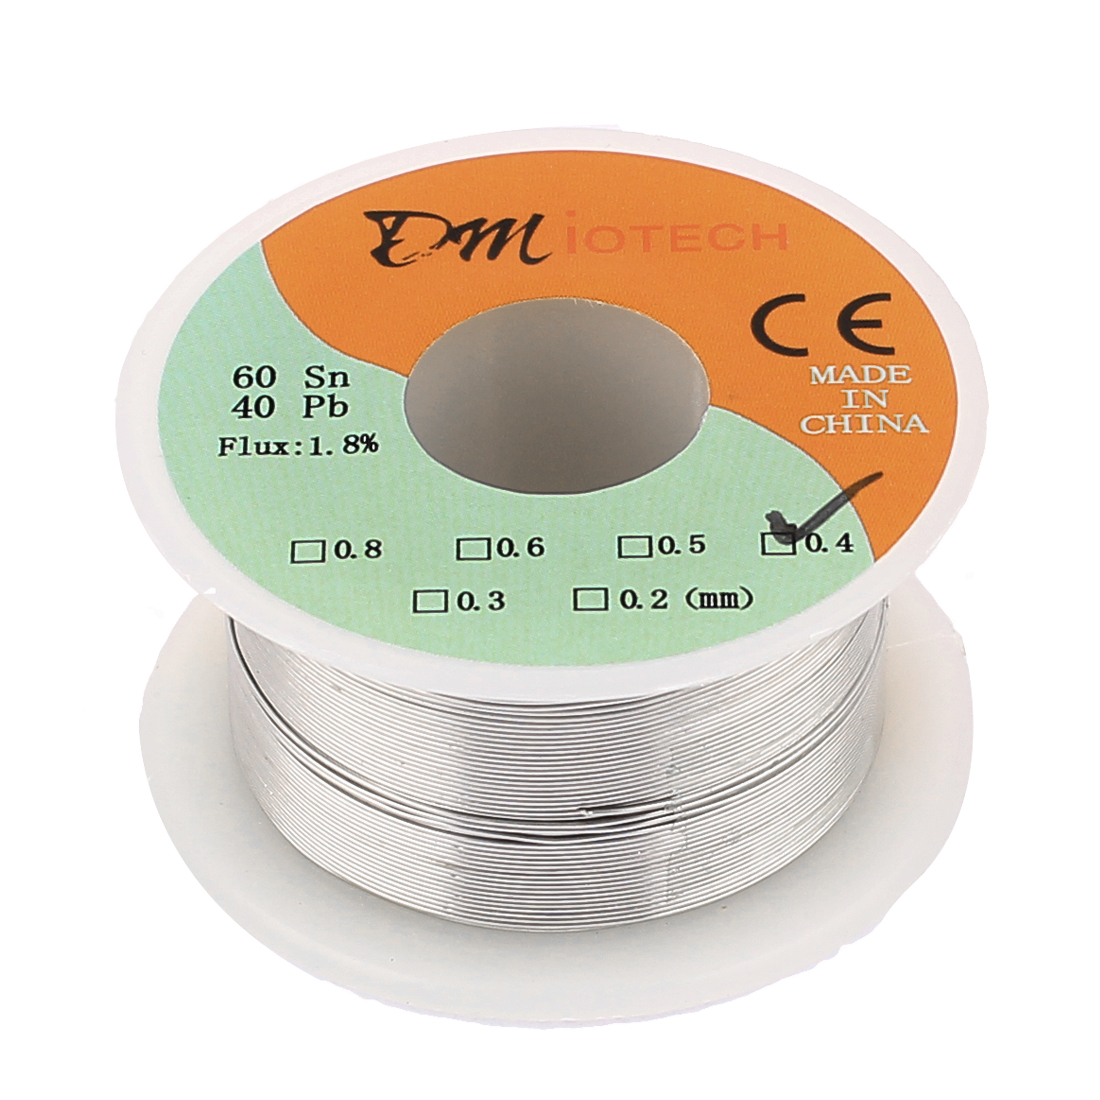 0.4mm Rosin Core Solder Tin Lead Solder Wire 60/40 for Electrical Soldering 50g